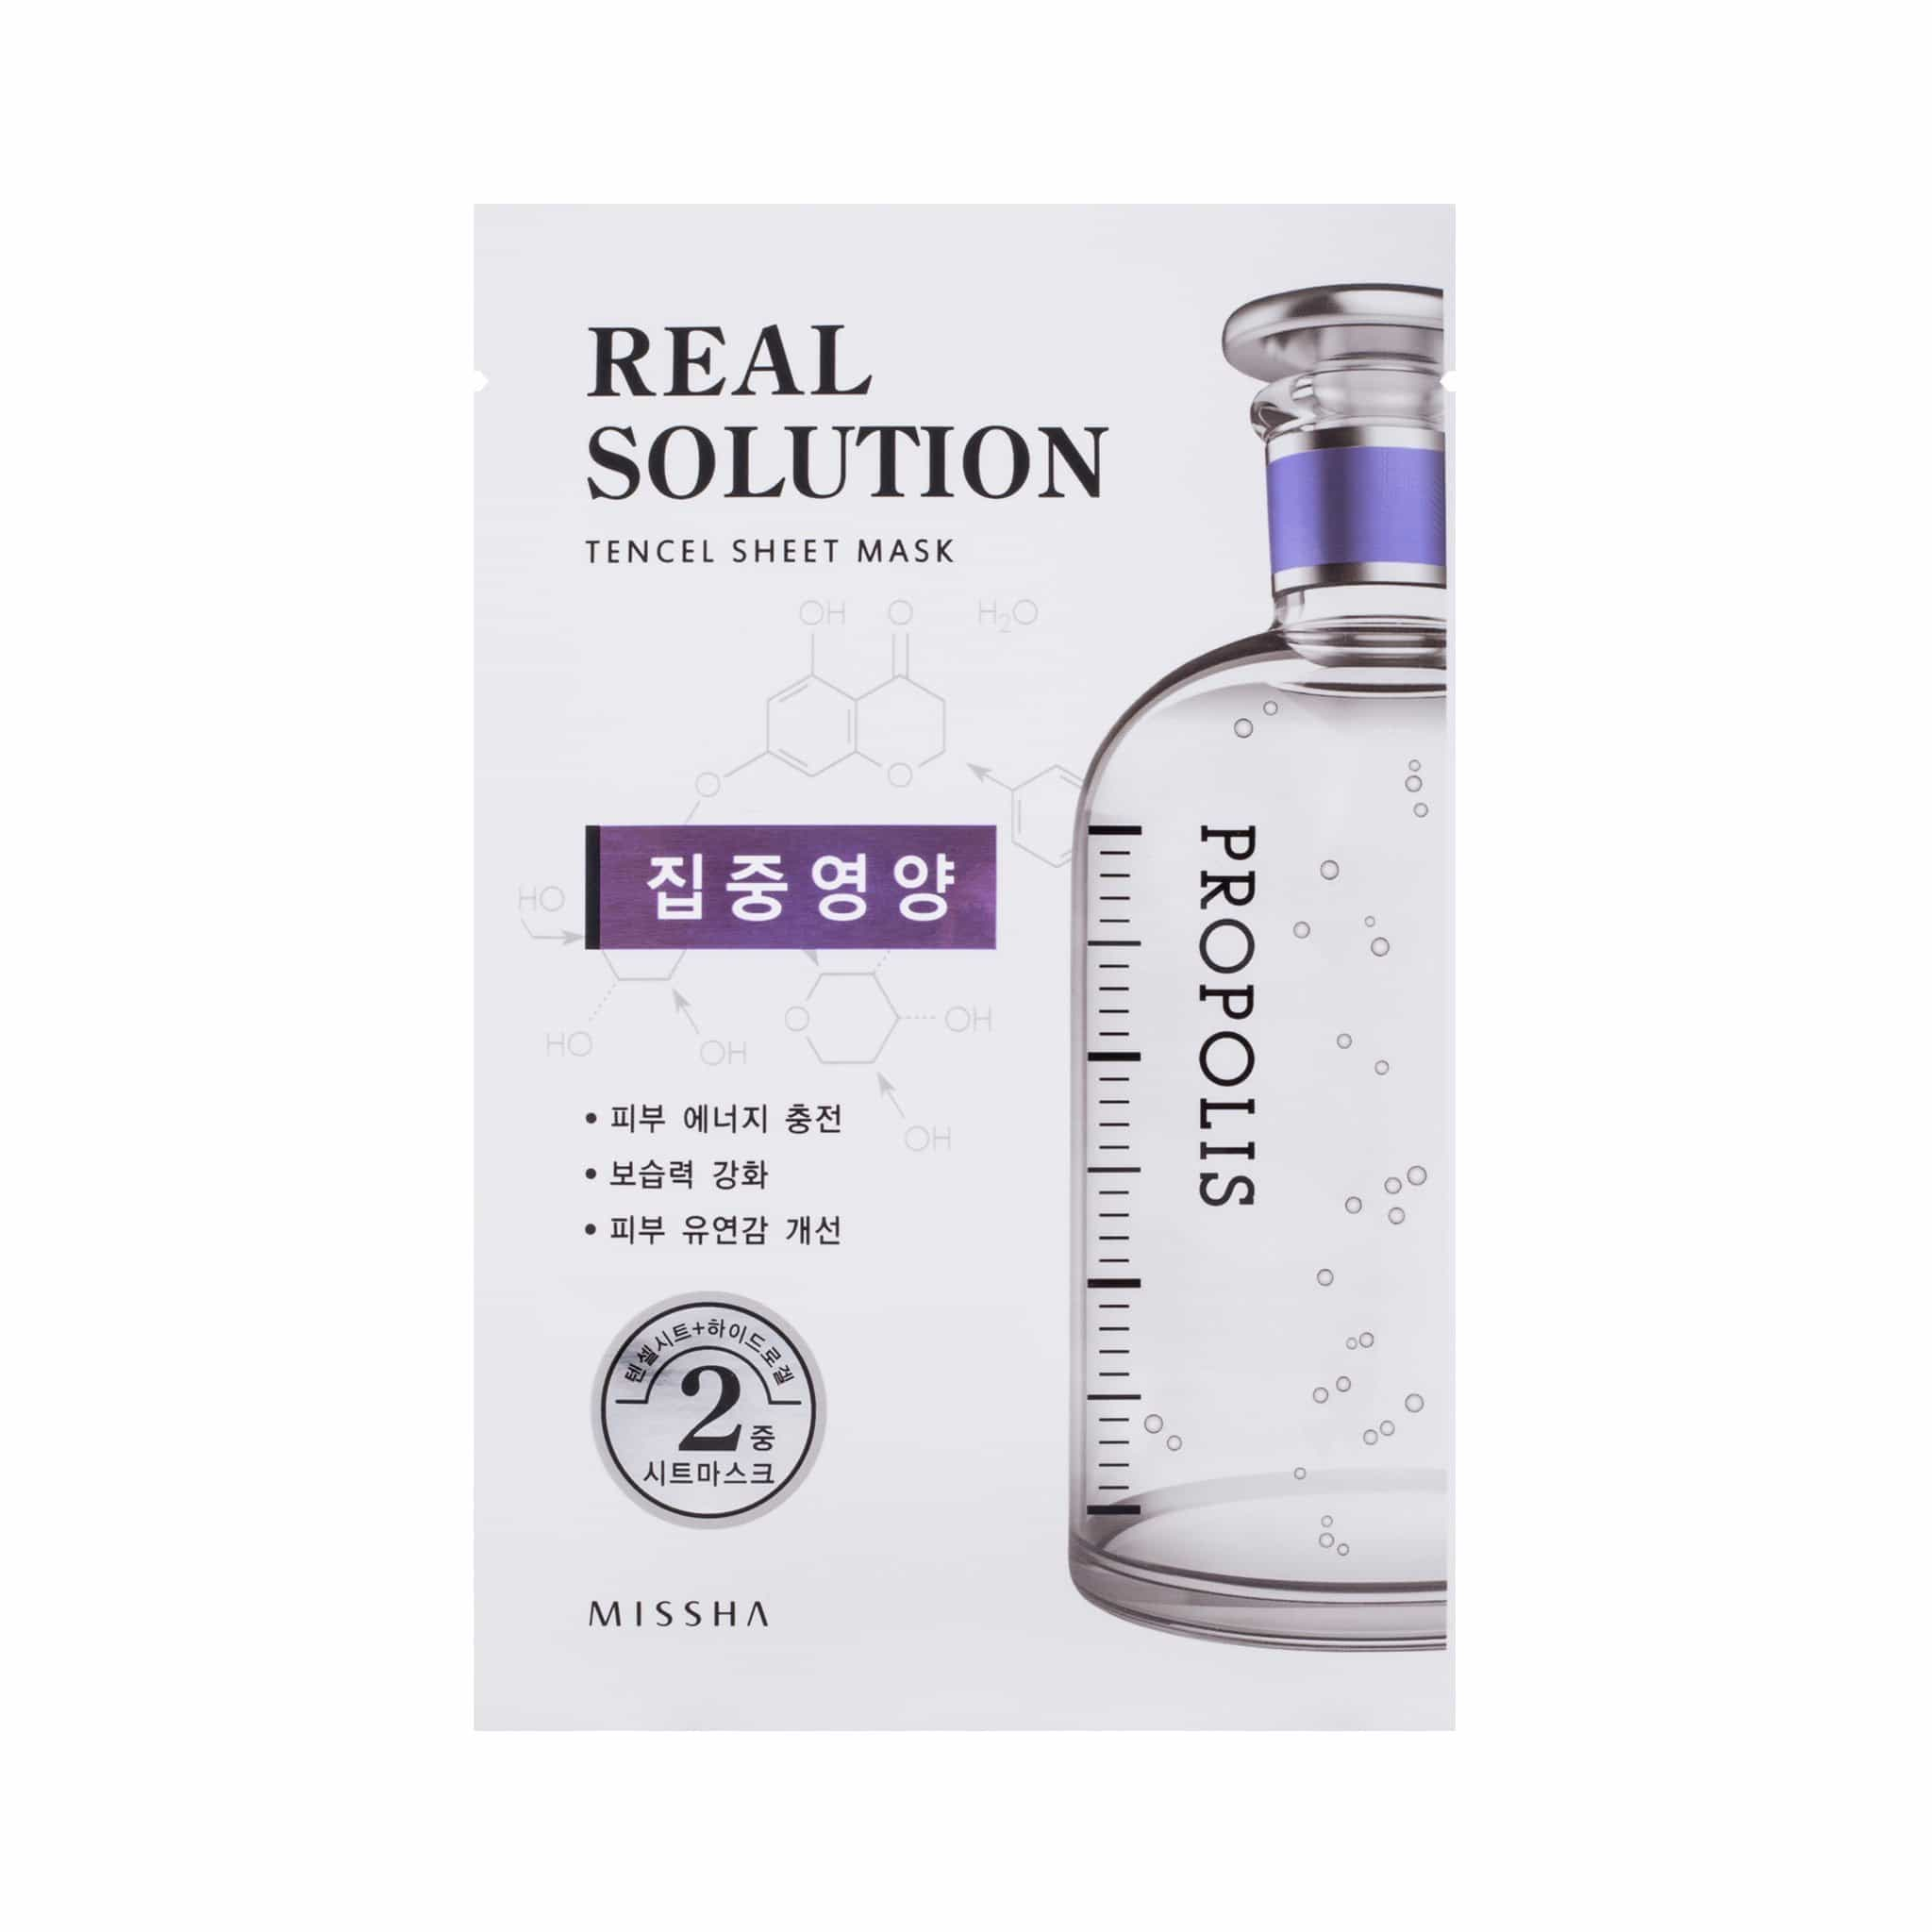 REAL SOLUTION TENCEL SHEET MASK - MISSHA